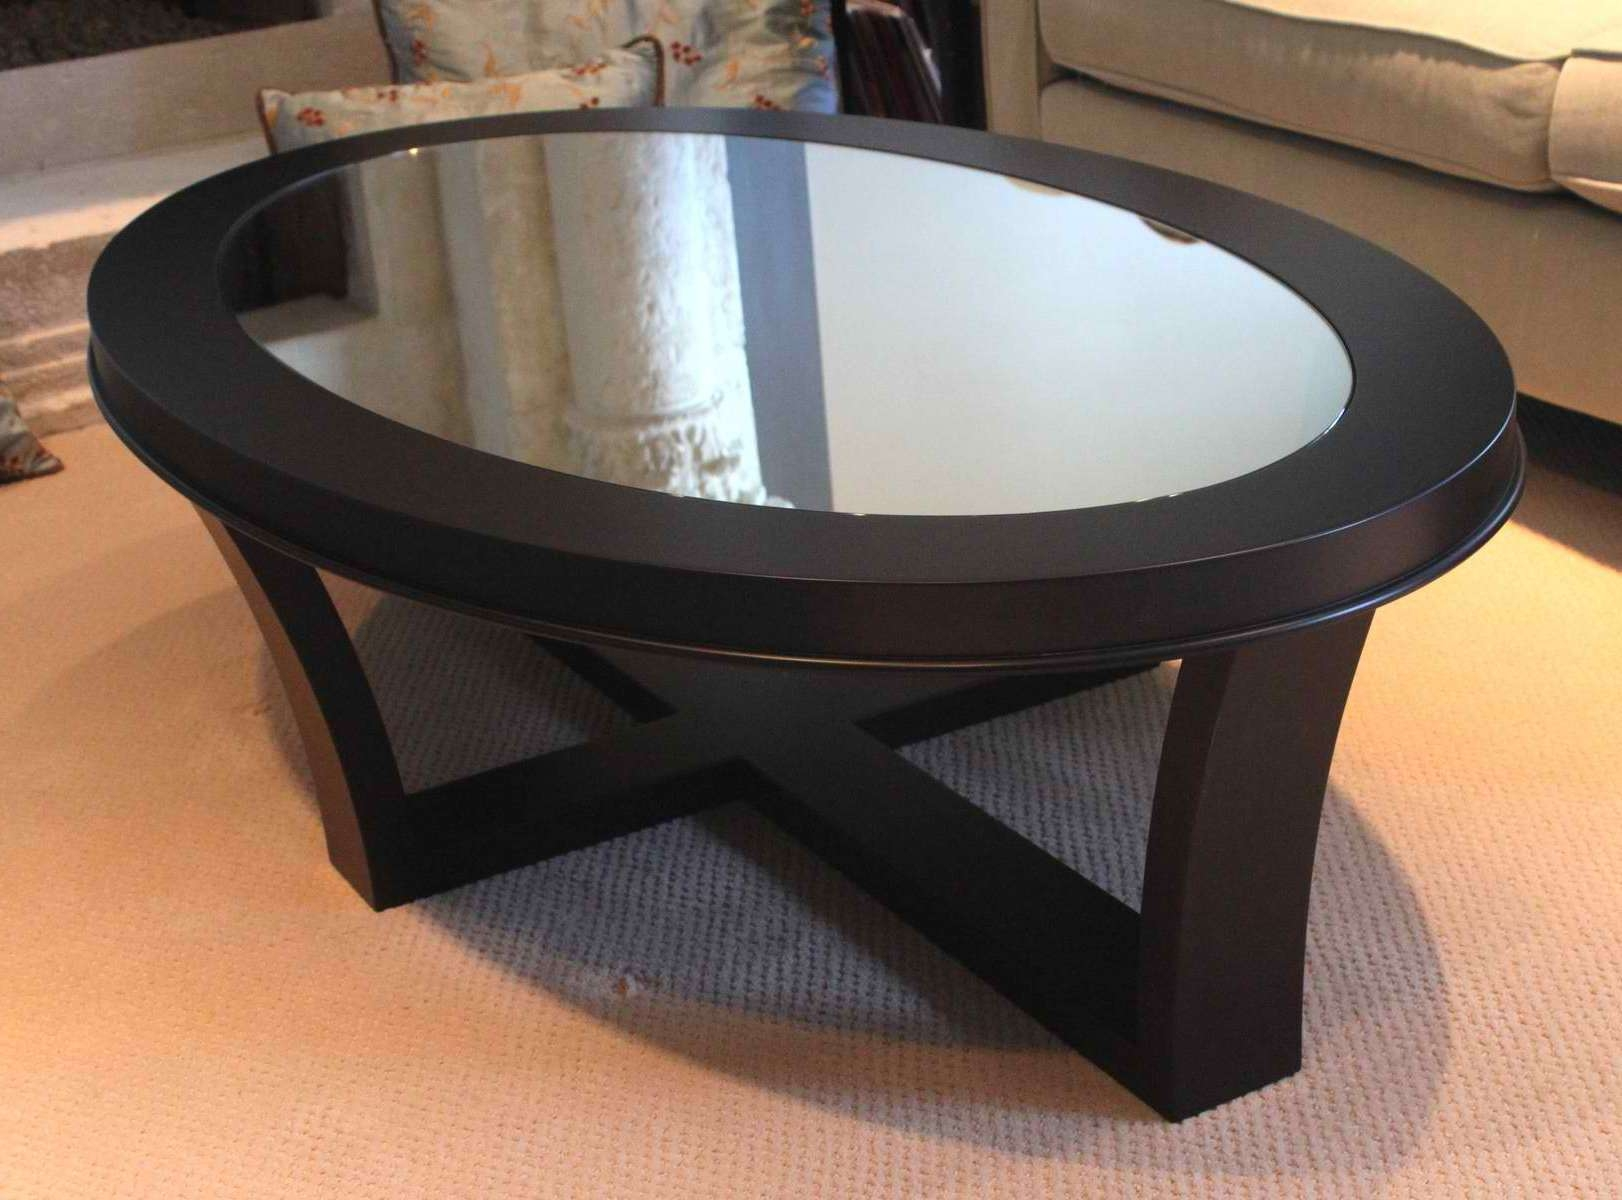 Preferred Glass Top Storage Coffee Tables In Oval Glass Top Coffee Table With Storage And Wooden Base With (View 18 of 20)